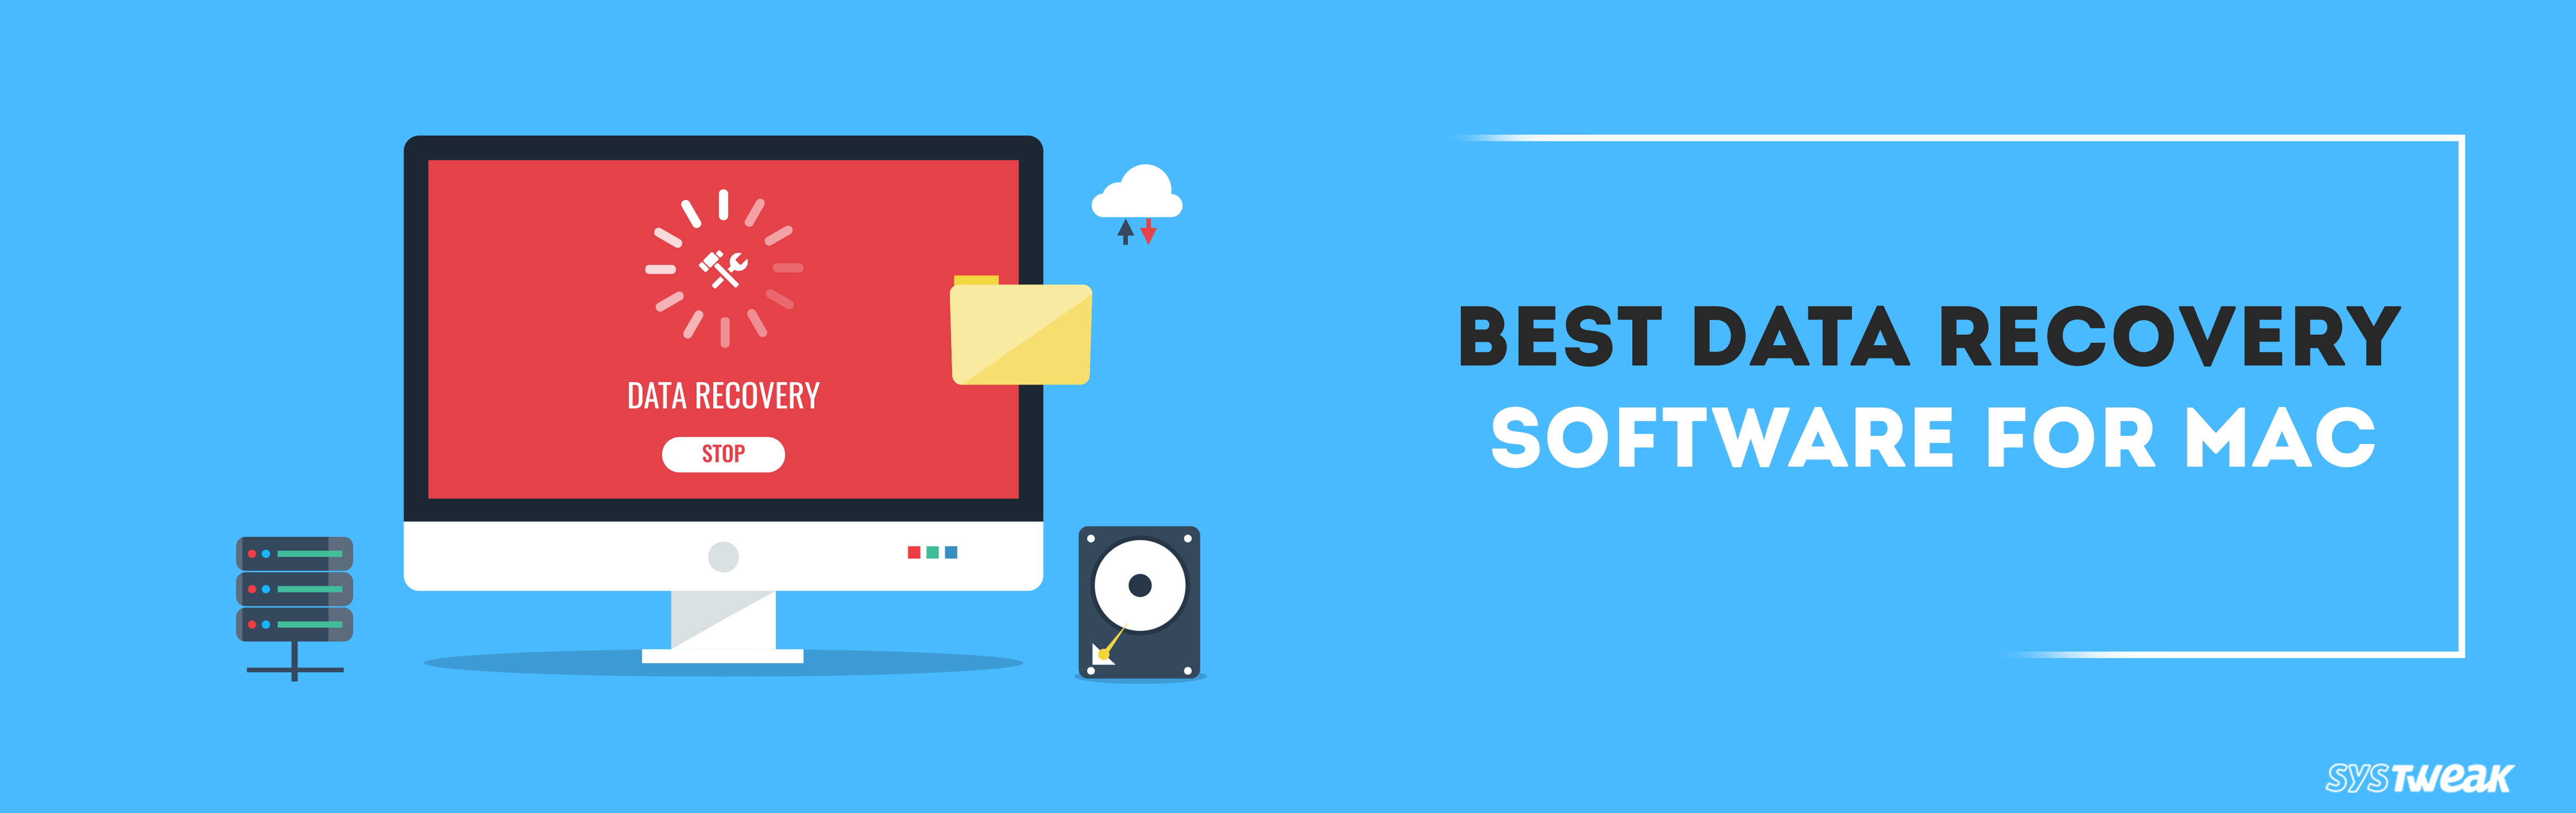 10 Best Data Recovery Software for Mac 2018